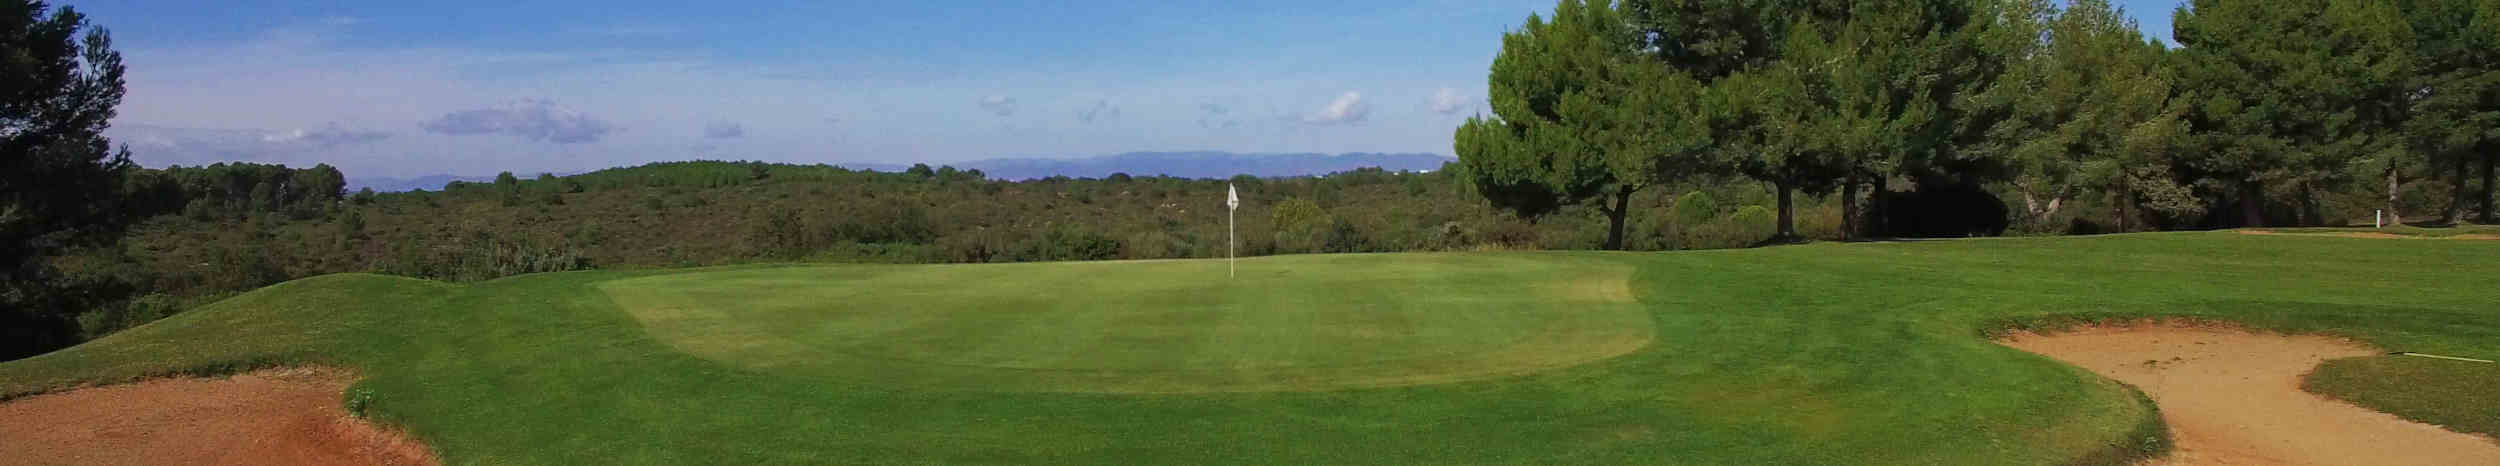 Sud France Golf - Golf de Beziers Saint Thomas